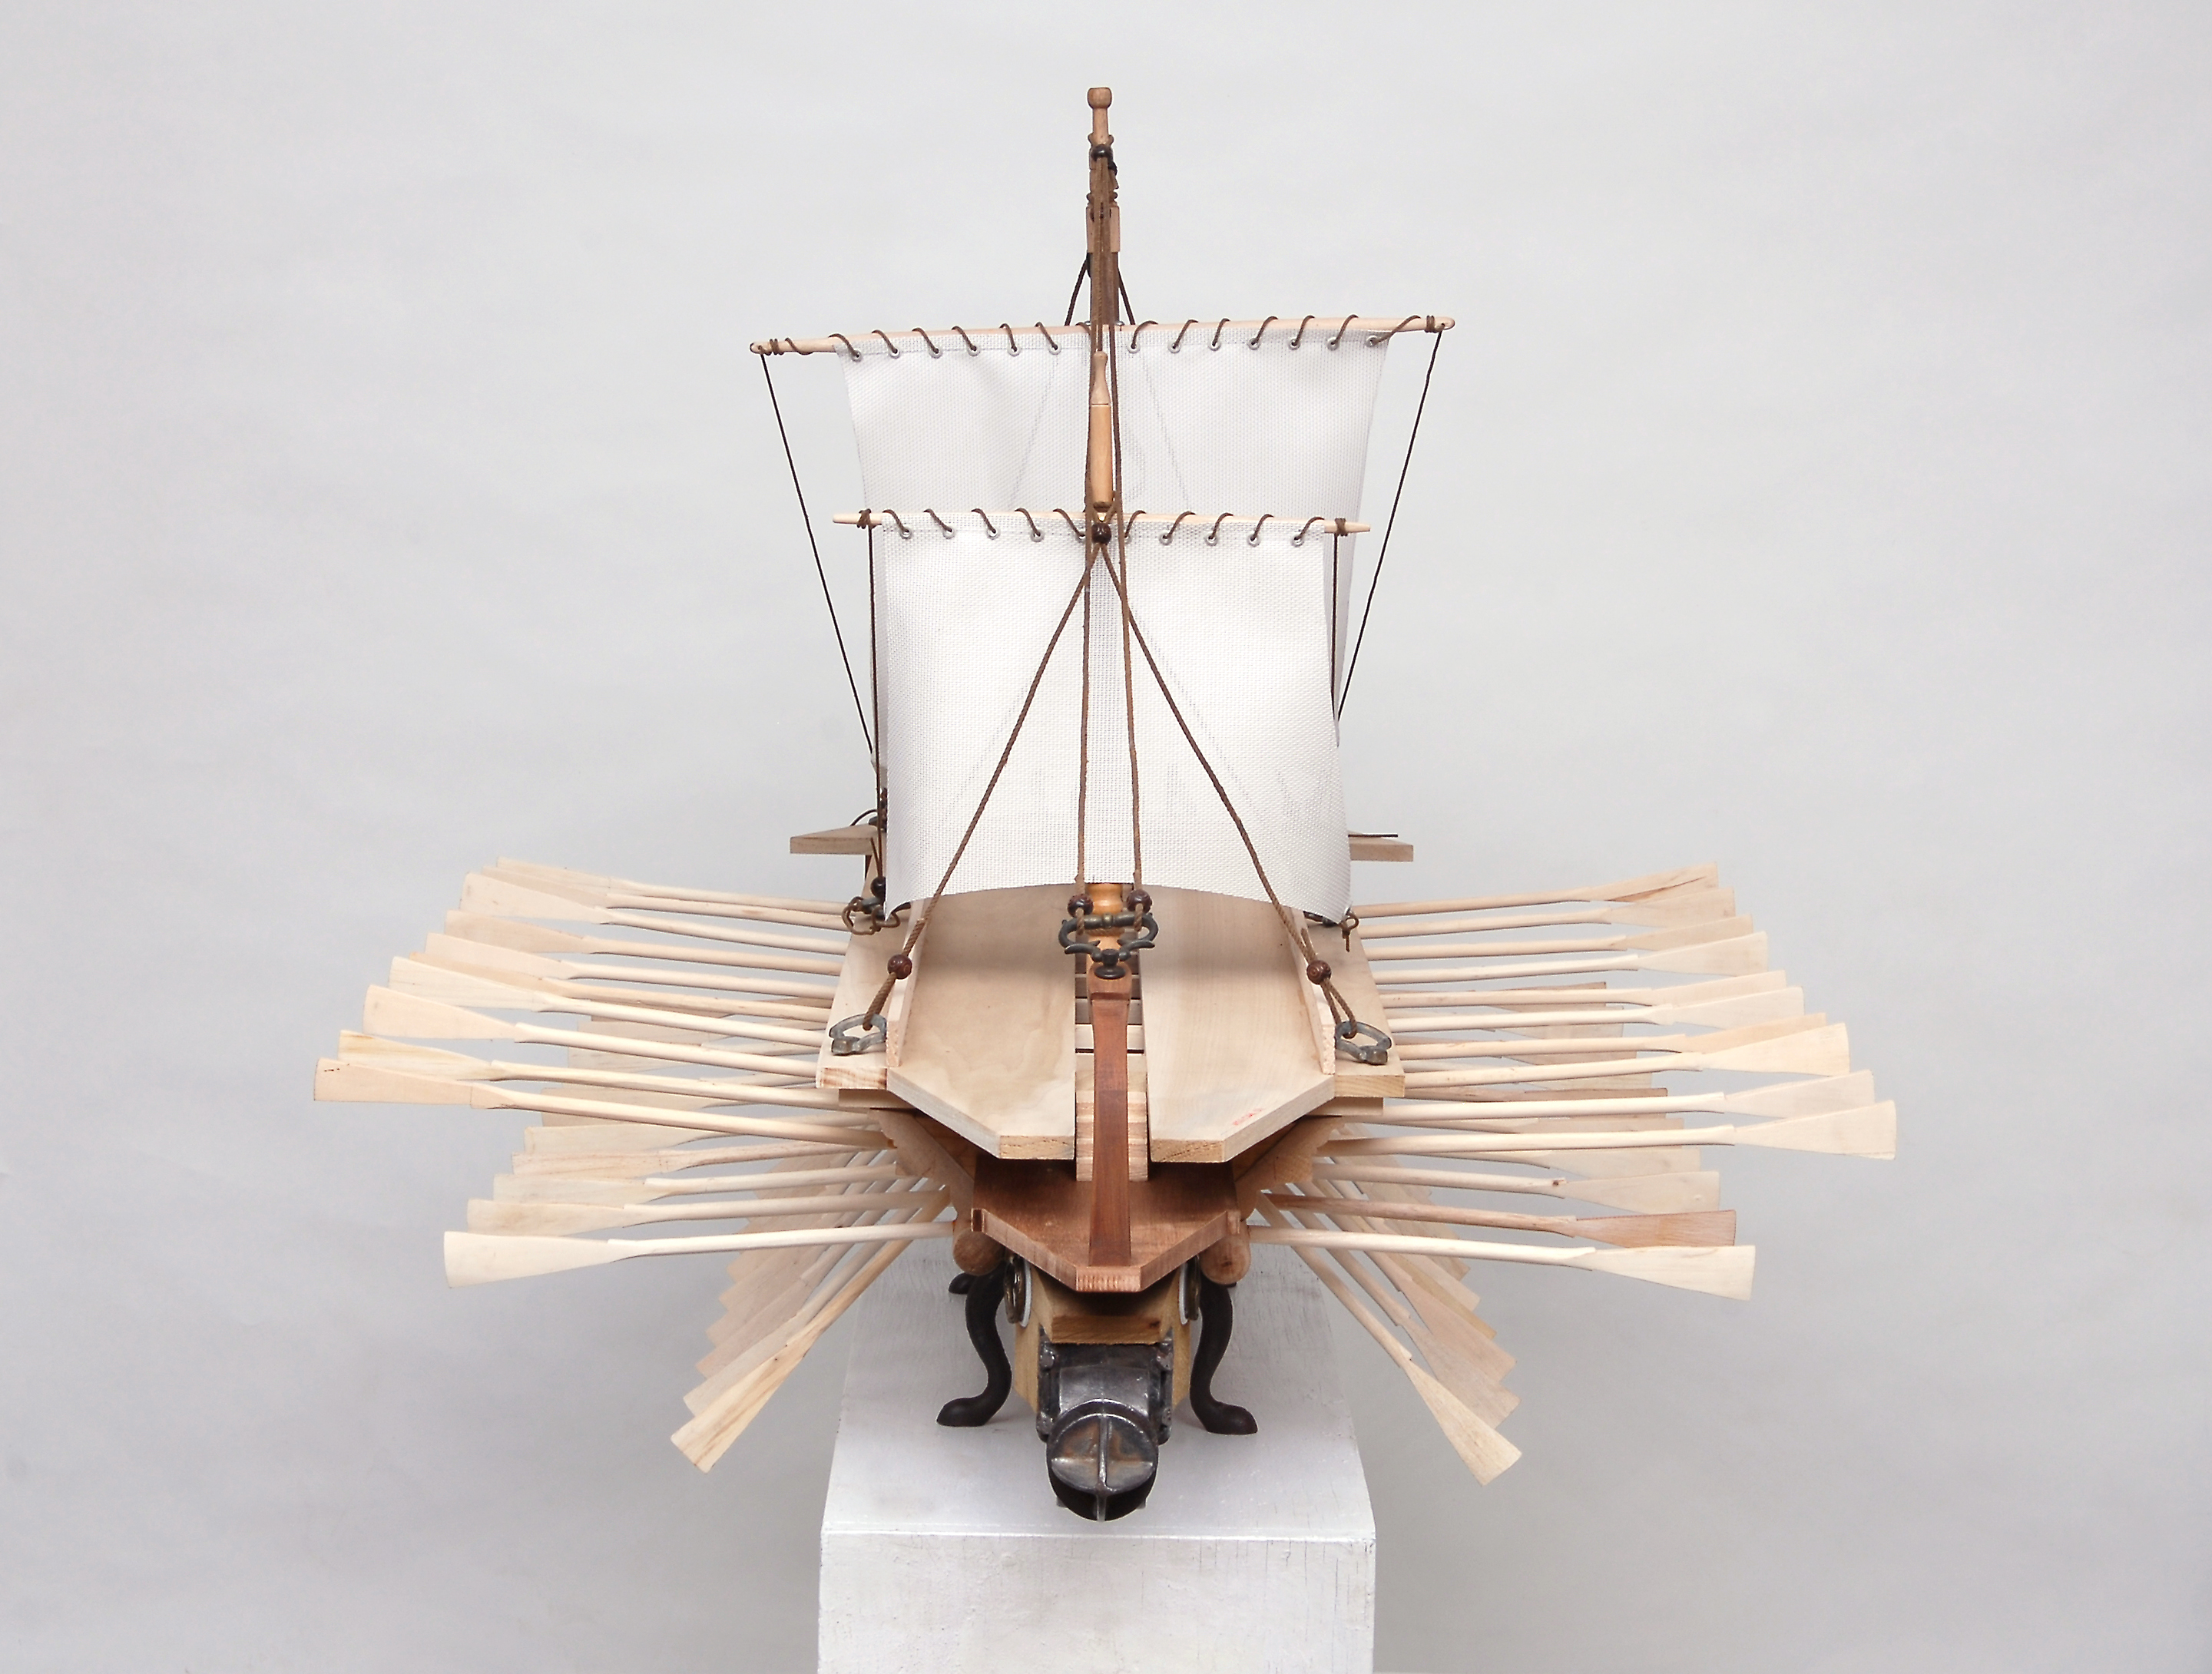 Trireme Front